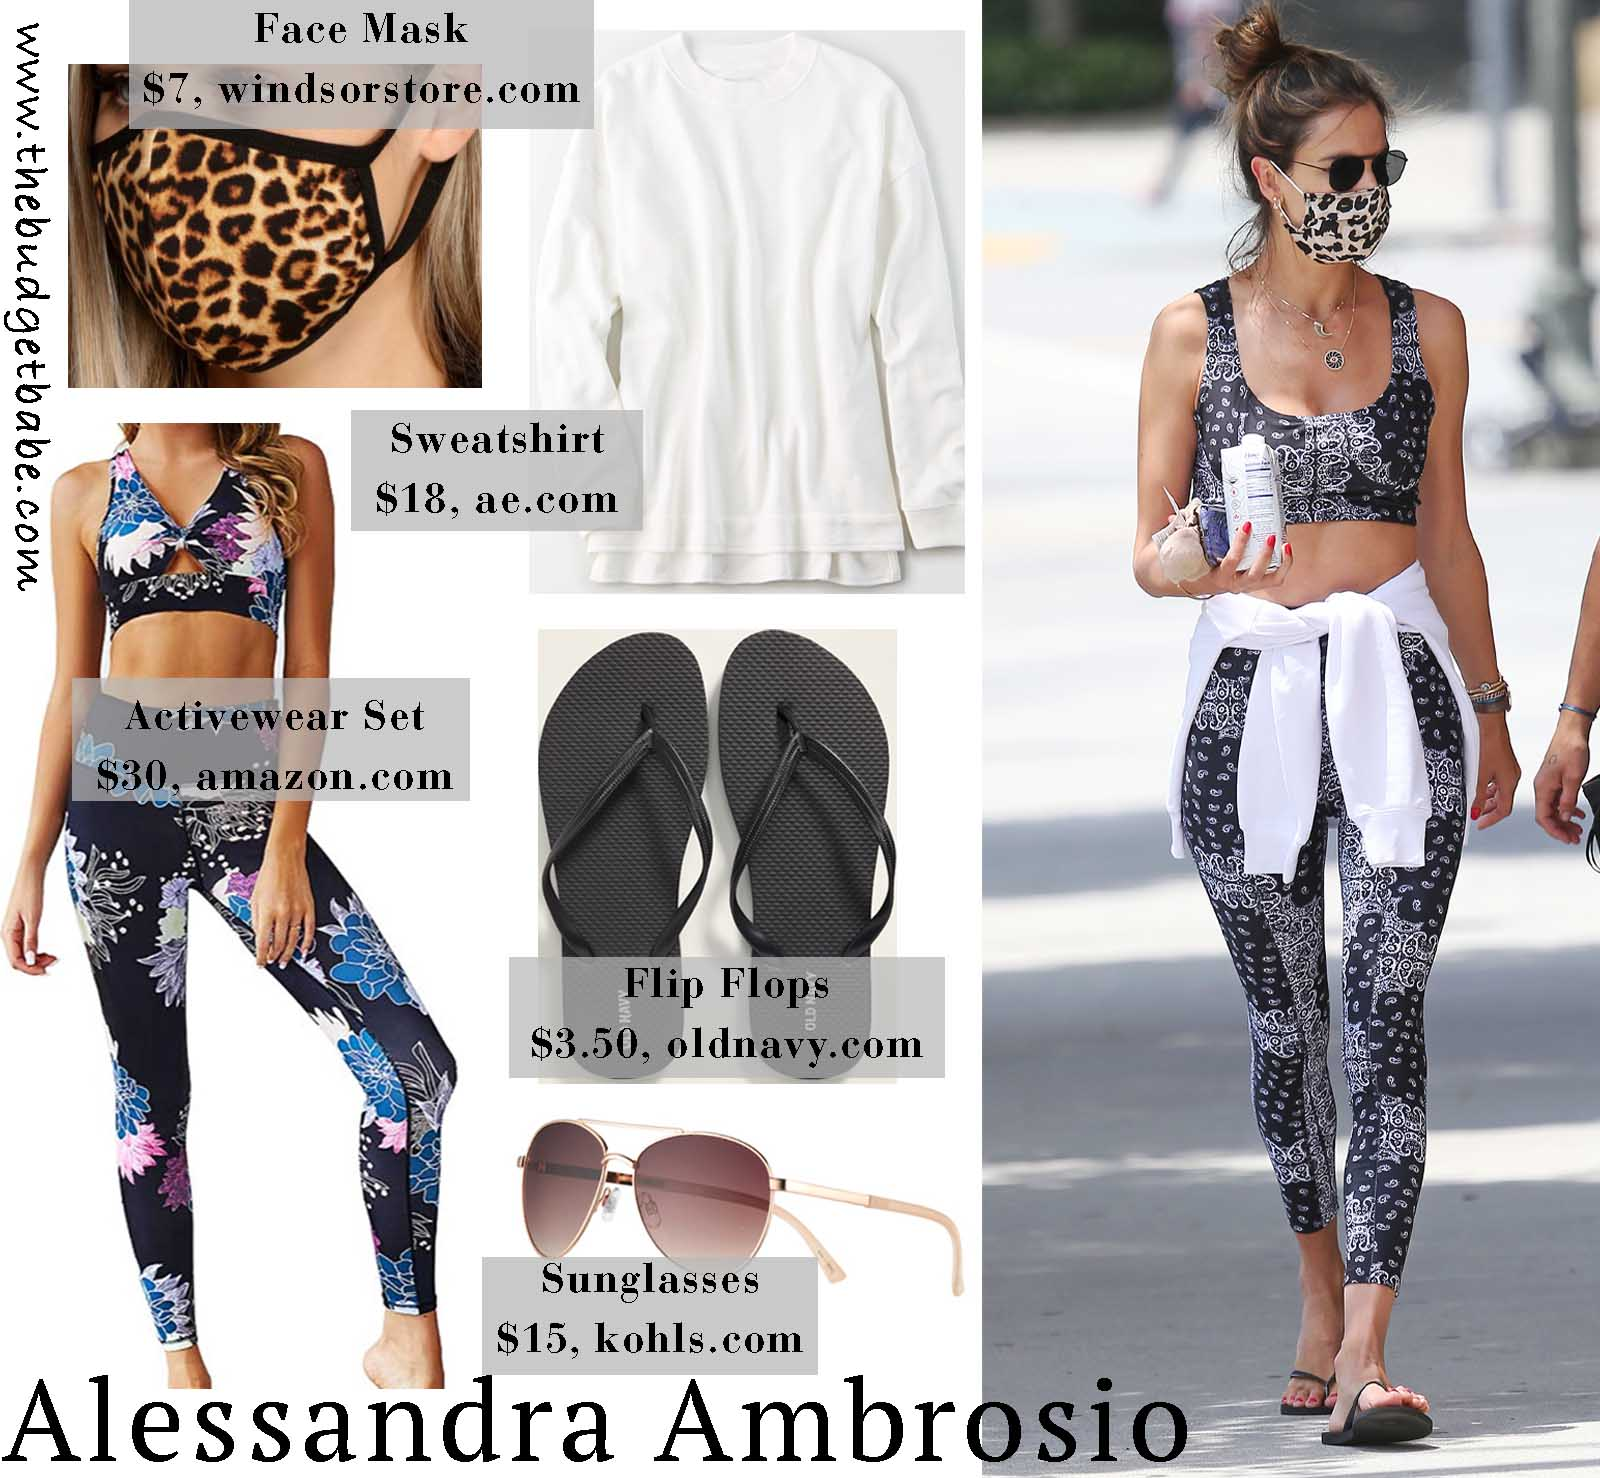 Alessandra is the ultimate workour inspiration in this cute set!